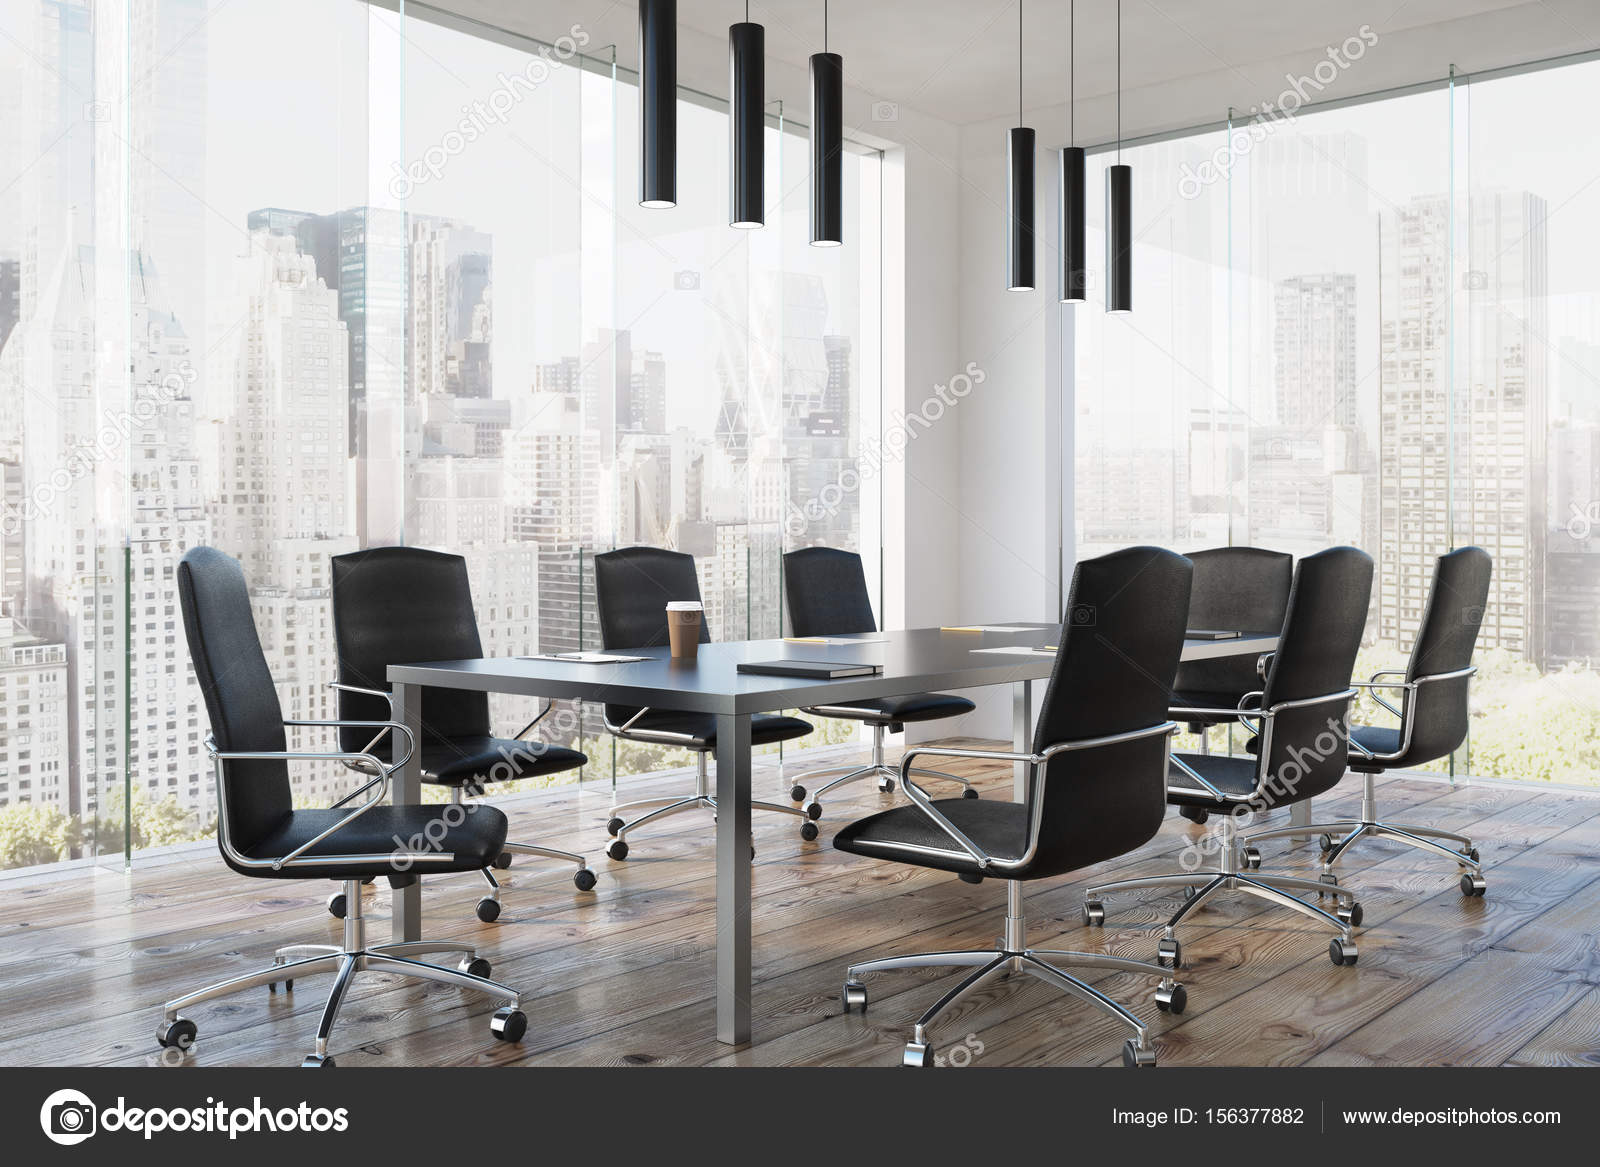 Corner Of A Modern Meeting Room Interior With Long Table Black Office Chairs Standing Near It And Glass Wall 3d Rendering Photo By Denisismagilov